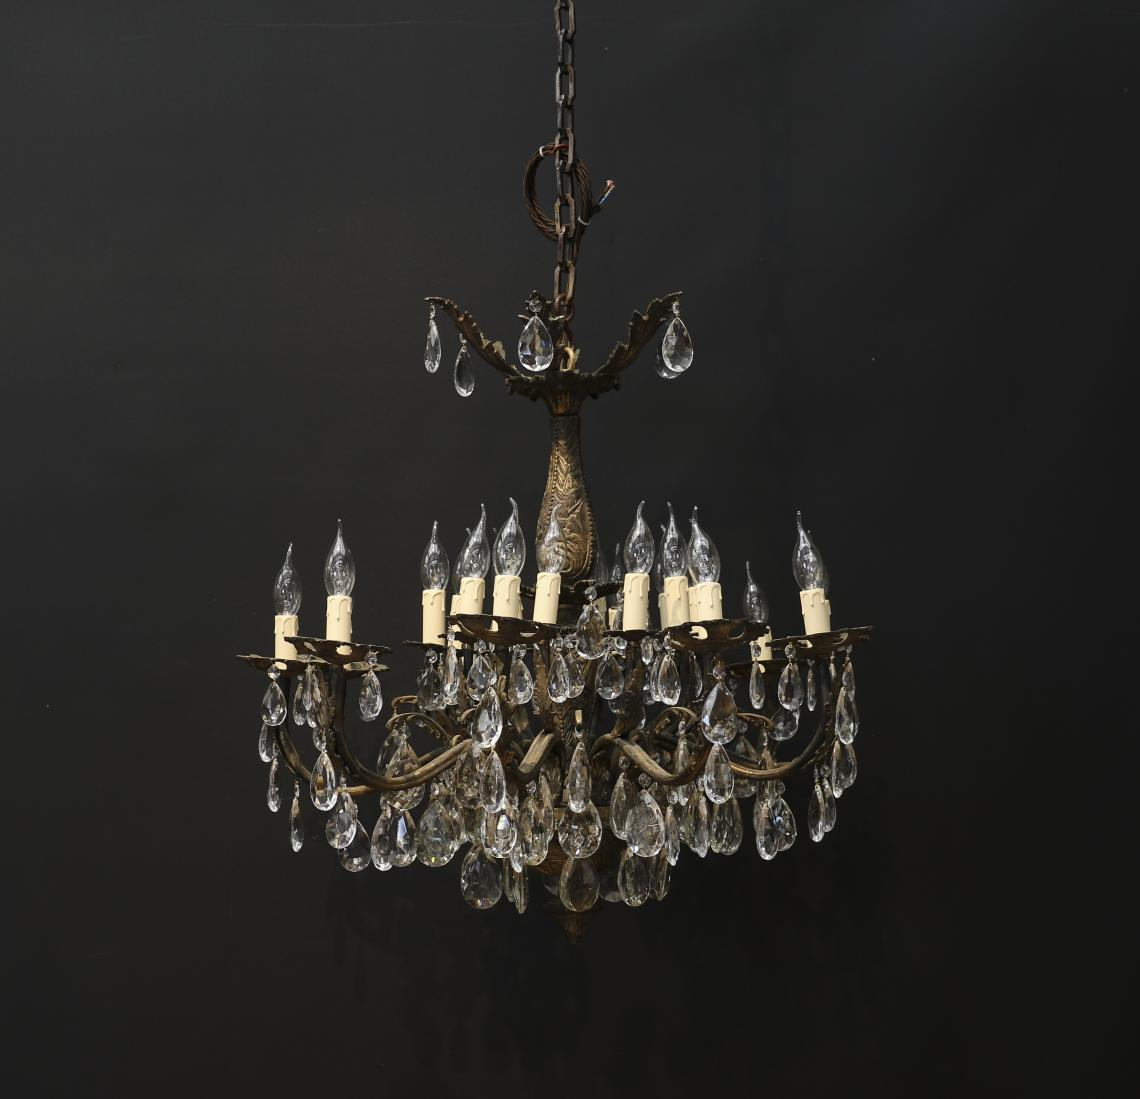 A European Chandelier with 20 lights